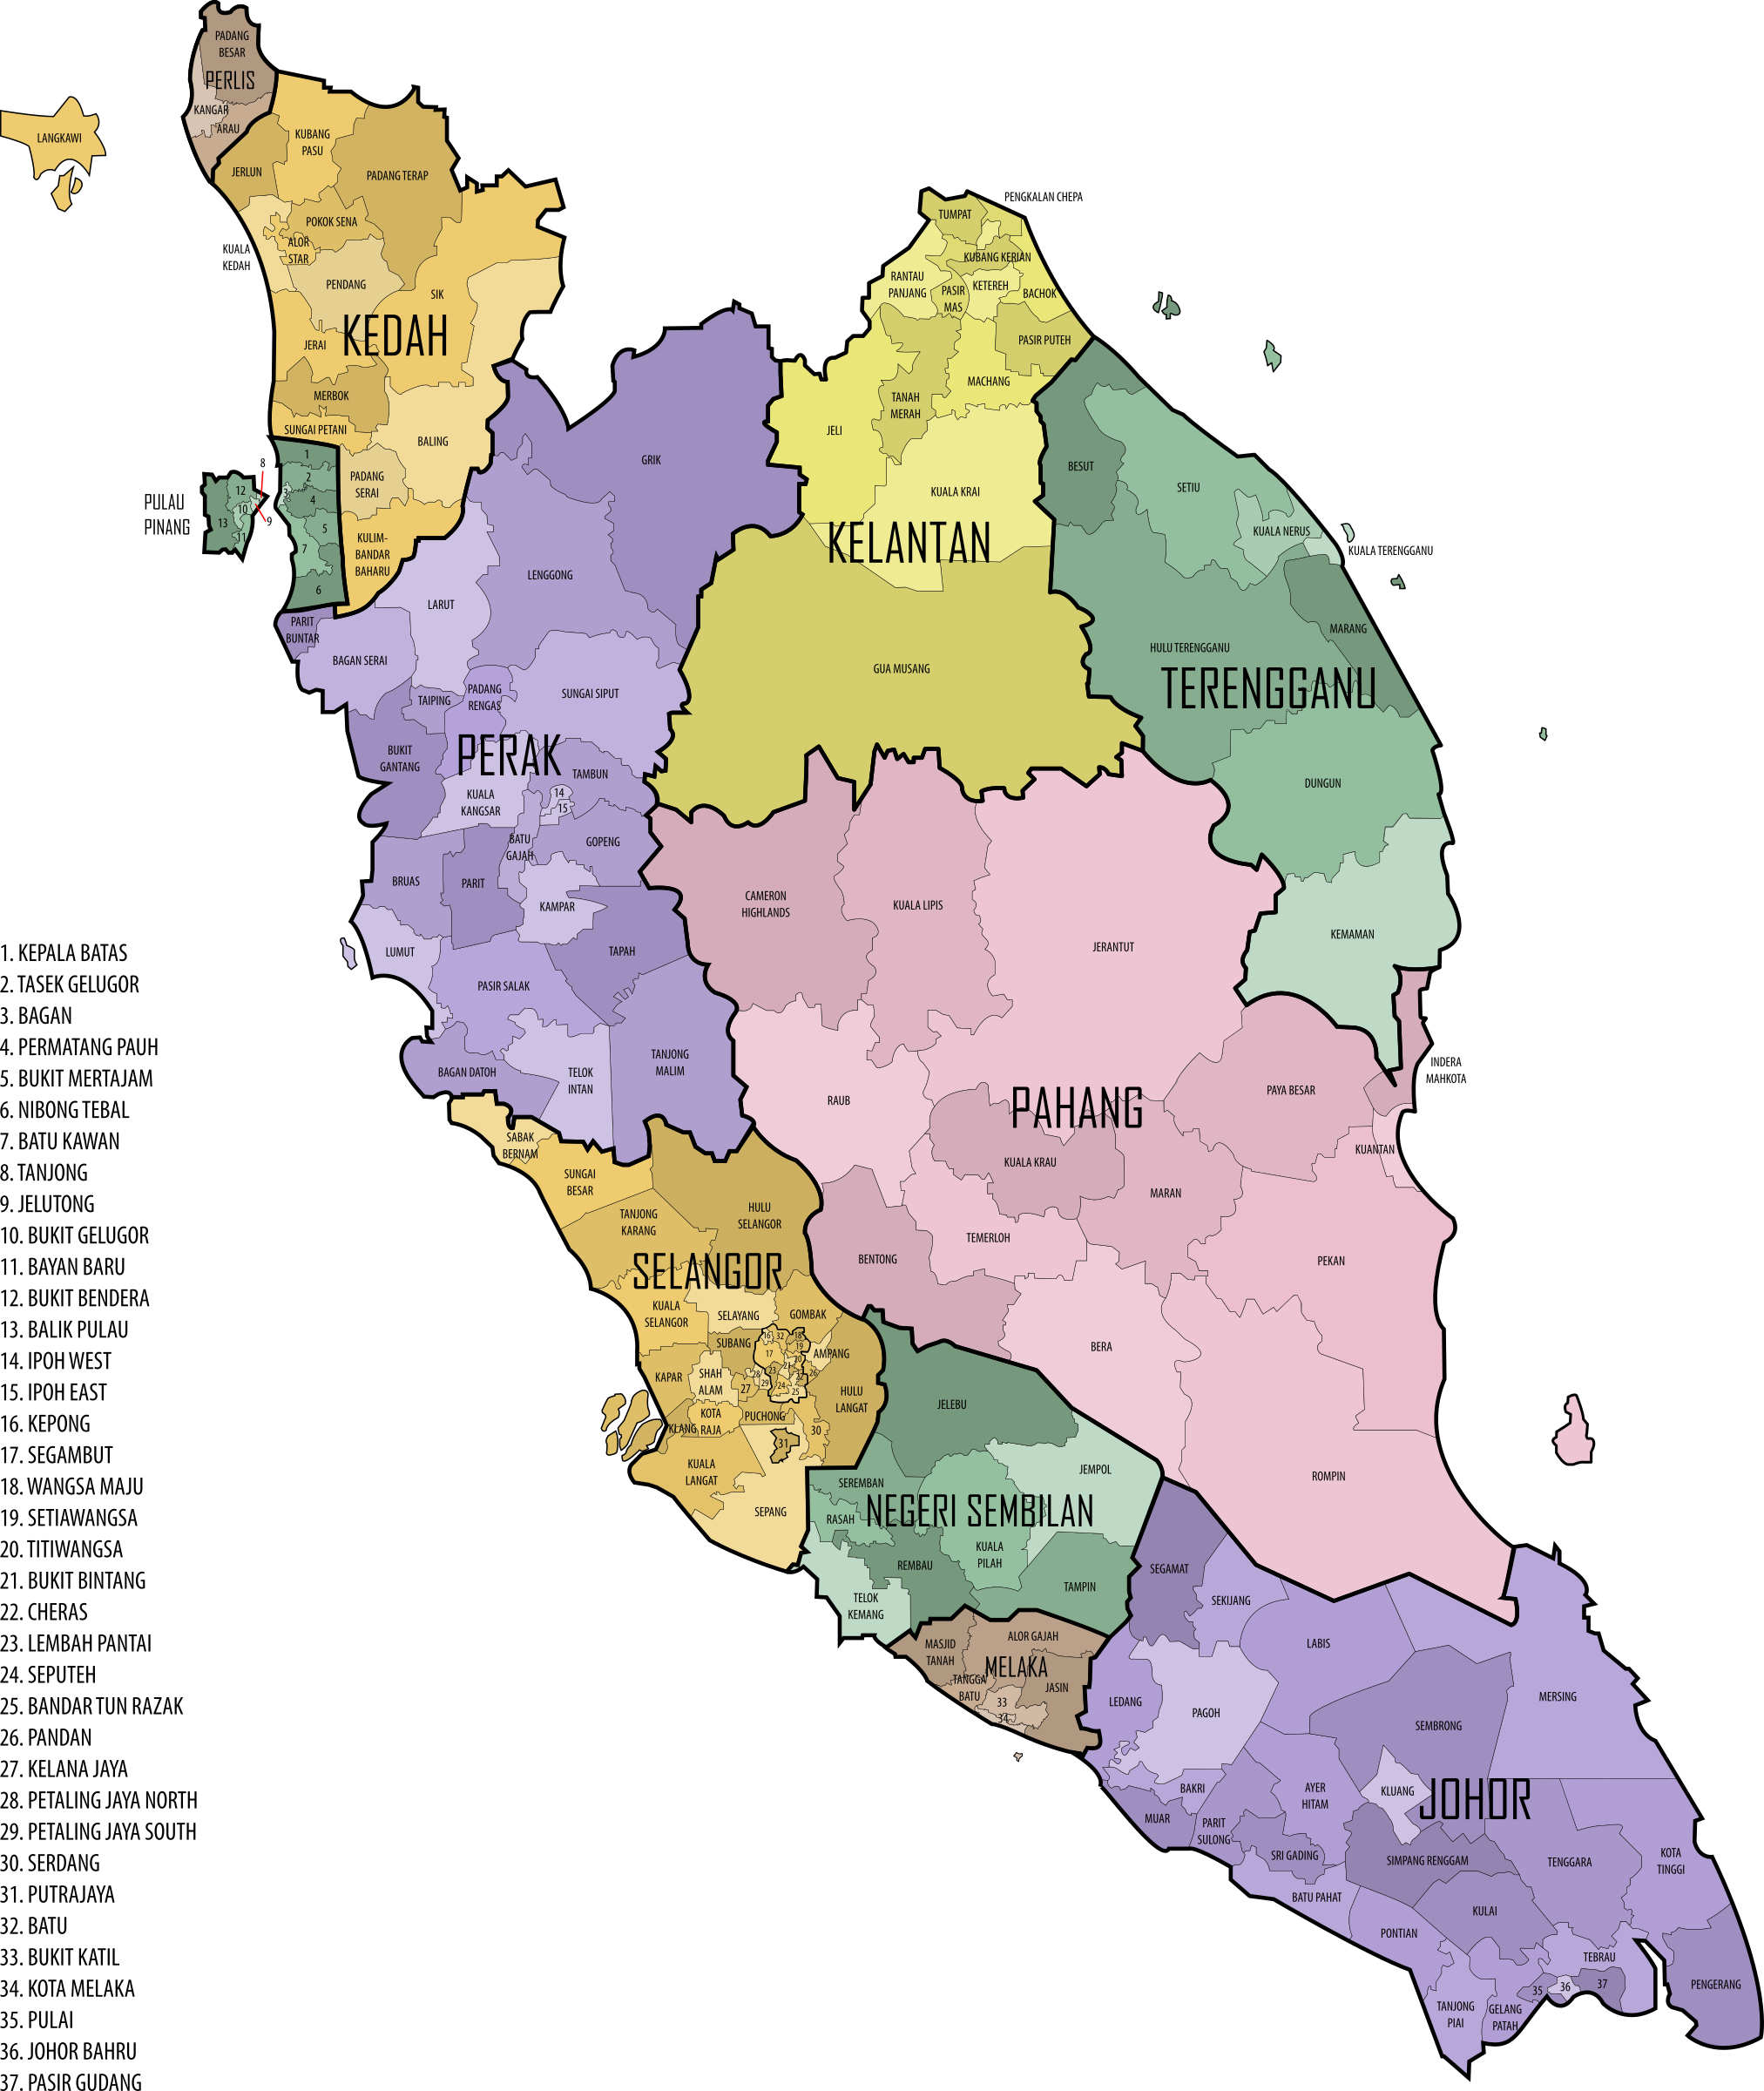 Malaysian Parliament Constituencies, 2015 (Peninsular Malaysia) by derkommander0916